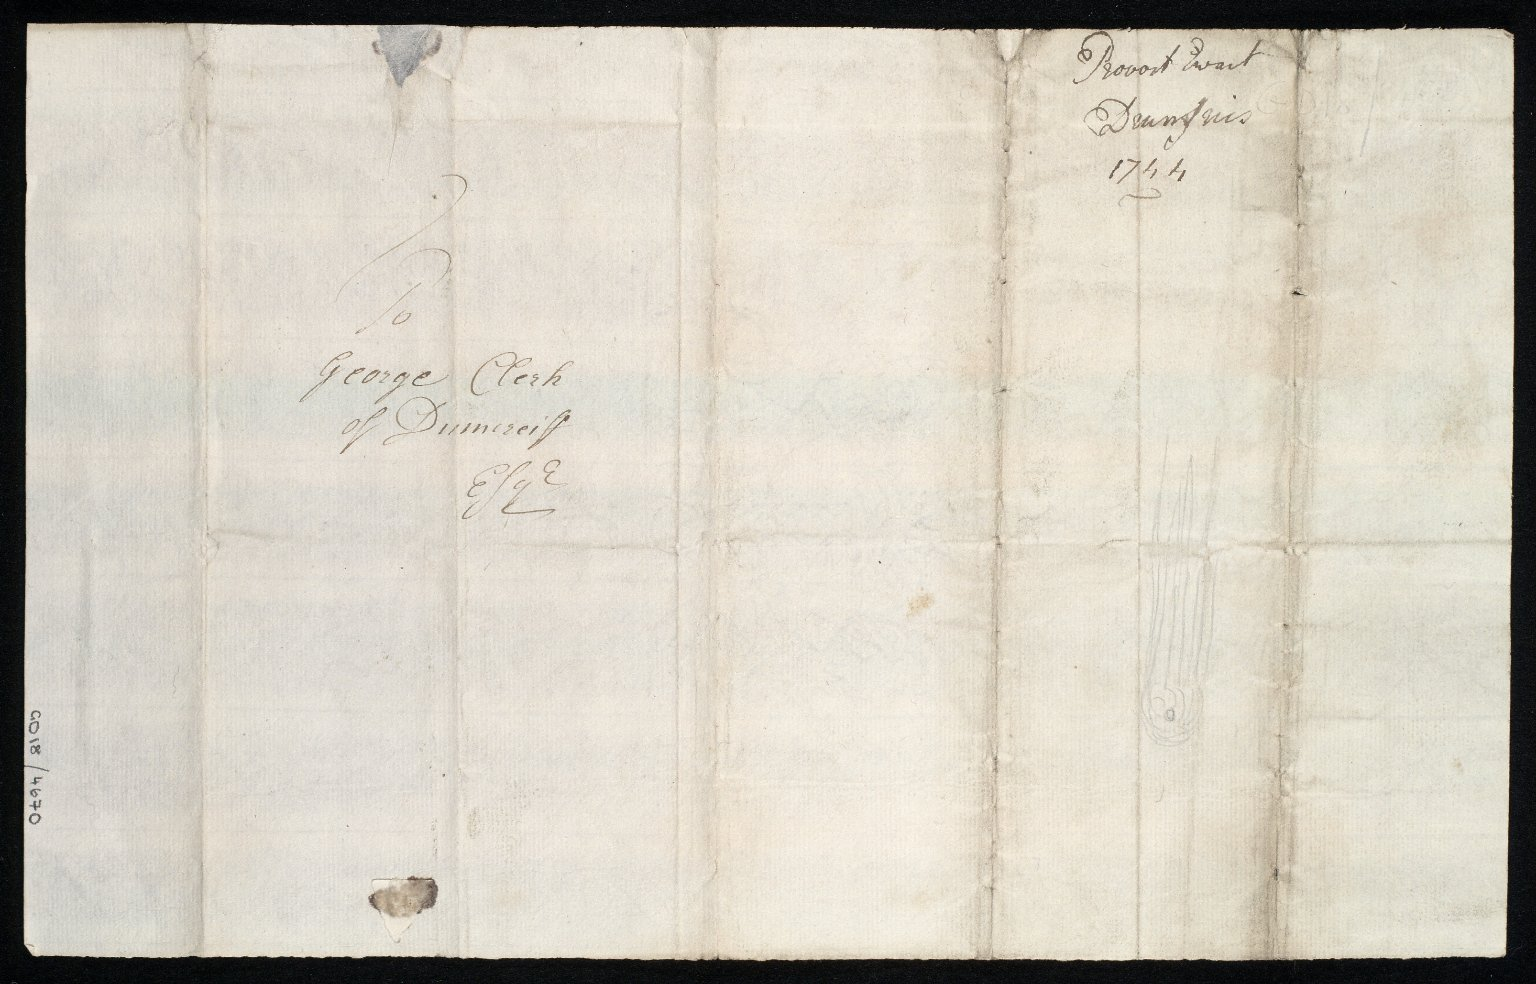 [Letter from Provost Joseph Ewart, Dumfries, to George Clerk of Dumfries regarding the engraving and printing of Thomas Winter's chart of the Solway Firth (1742) by Richard Cooper] [2 of 2]